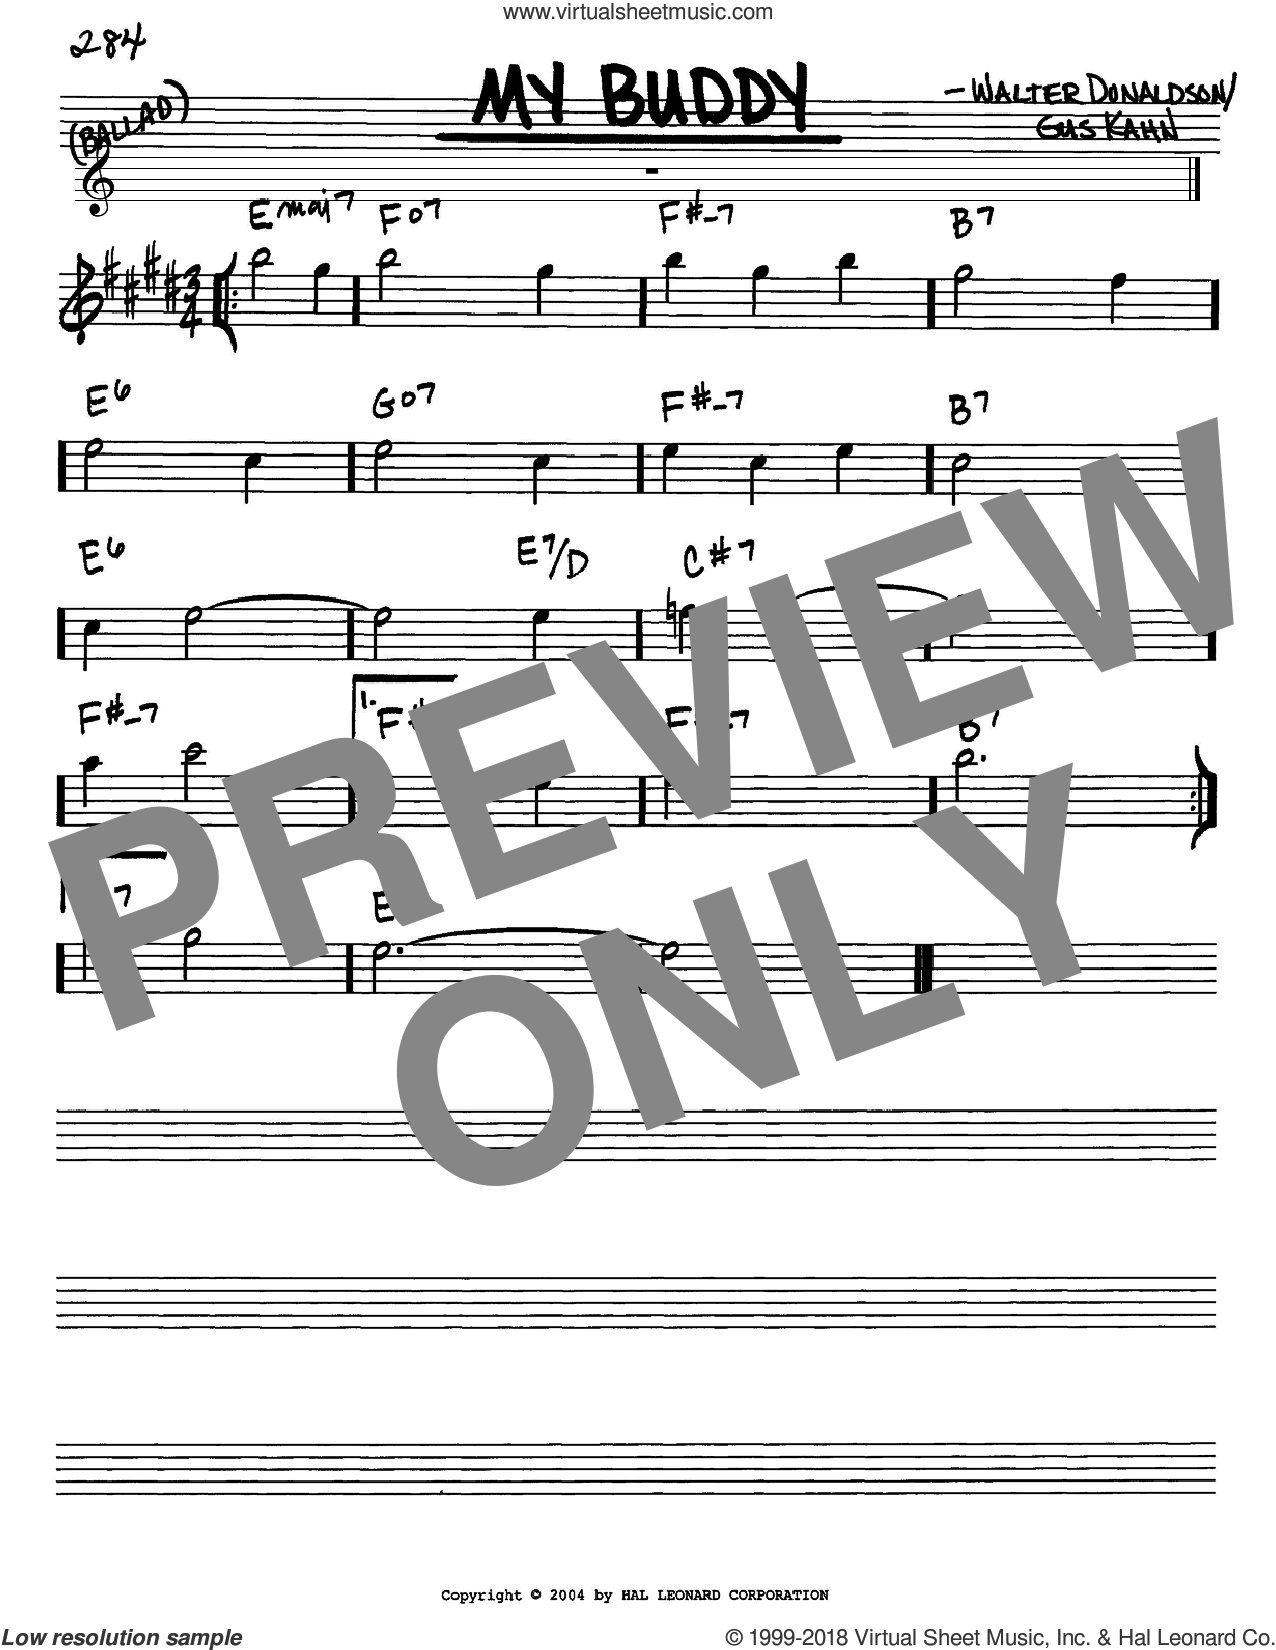 My Buddy sheet music for voice and other instruments (Eb) by Walter Donaldson